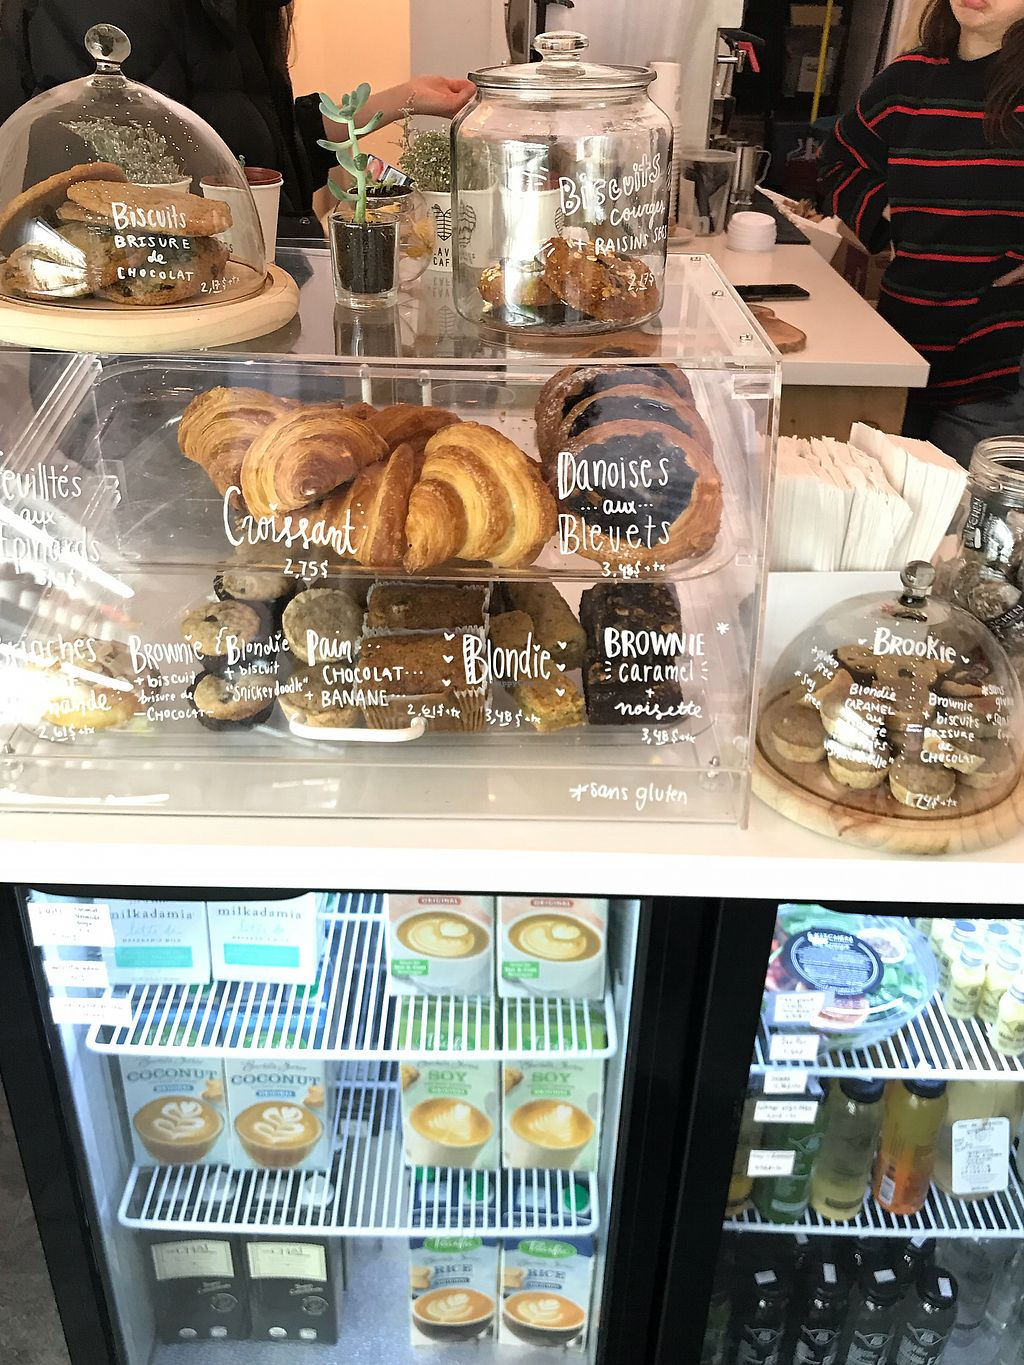 "Photo of Leaves Cafe  by <a href=""/members/profile/prettywholesome"">prettywholesome</a> <br/>Tasty pastries ? <br/> February 20, 2018  - <a href='/contact/abuse/image/96956/361736'>Report</a>"